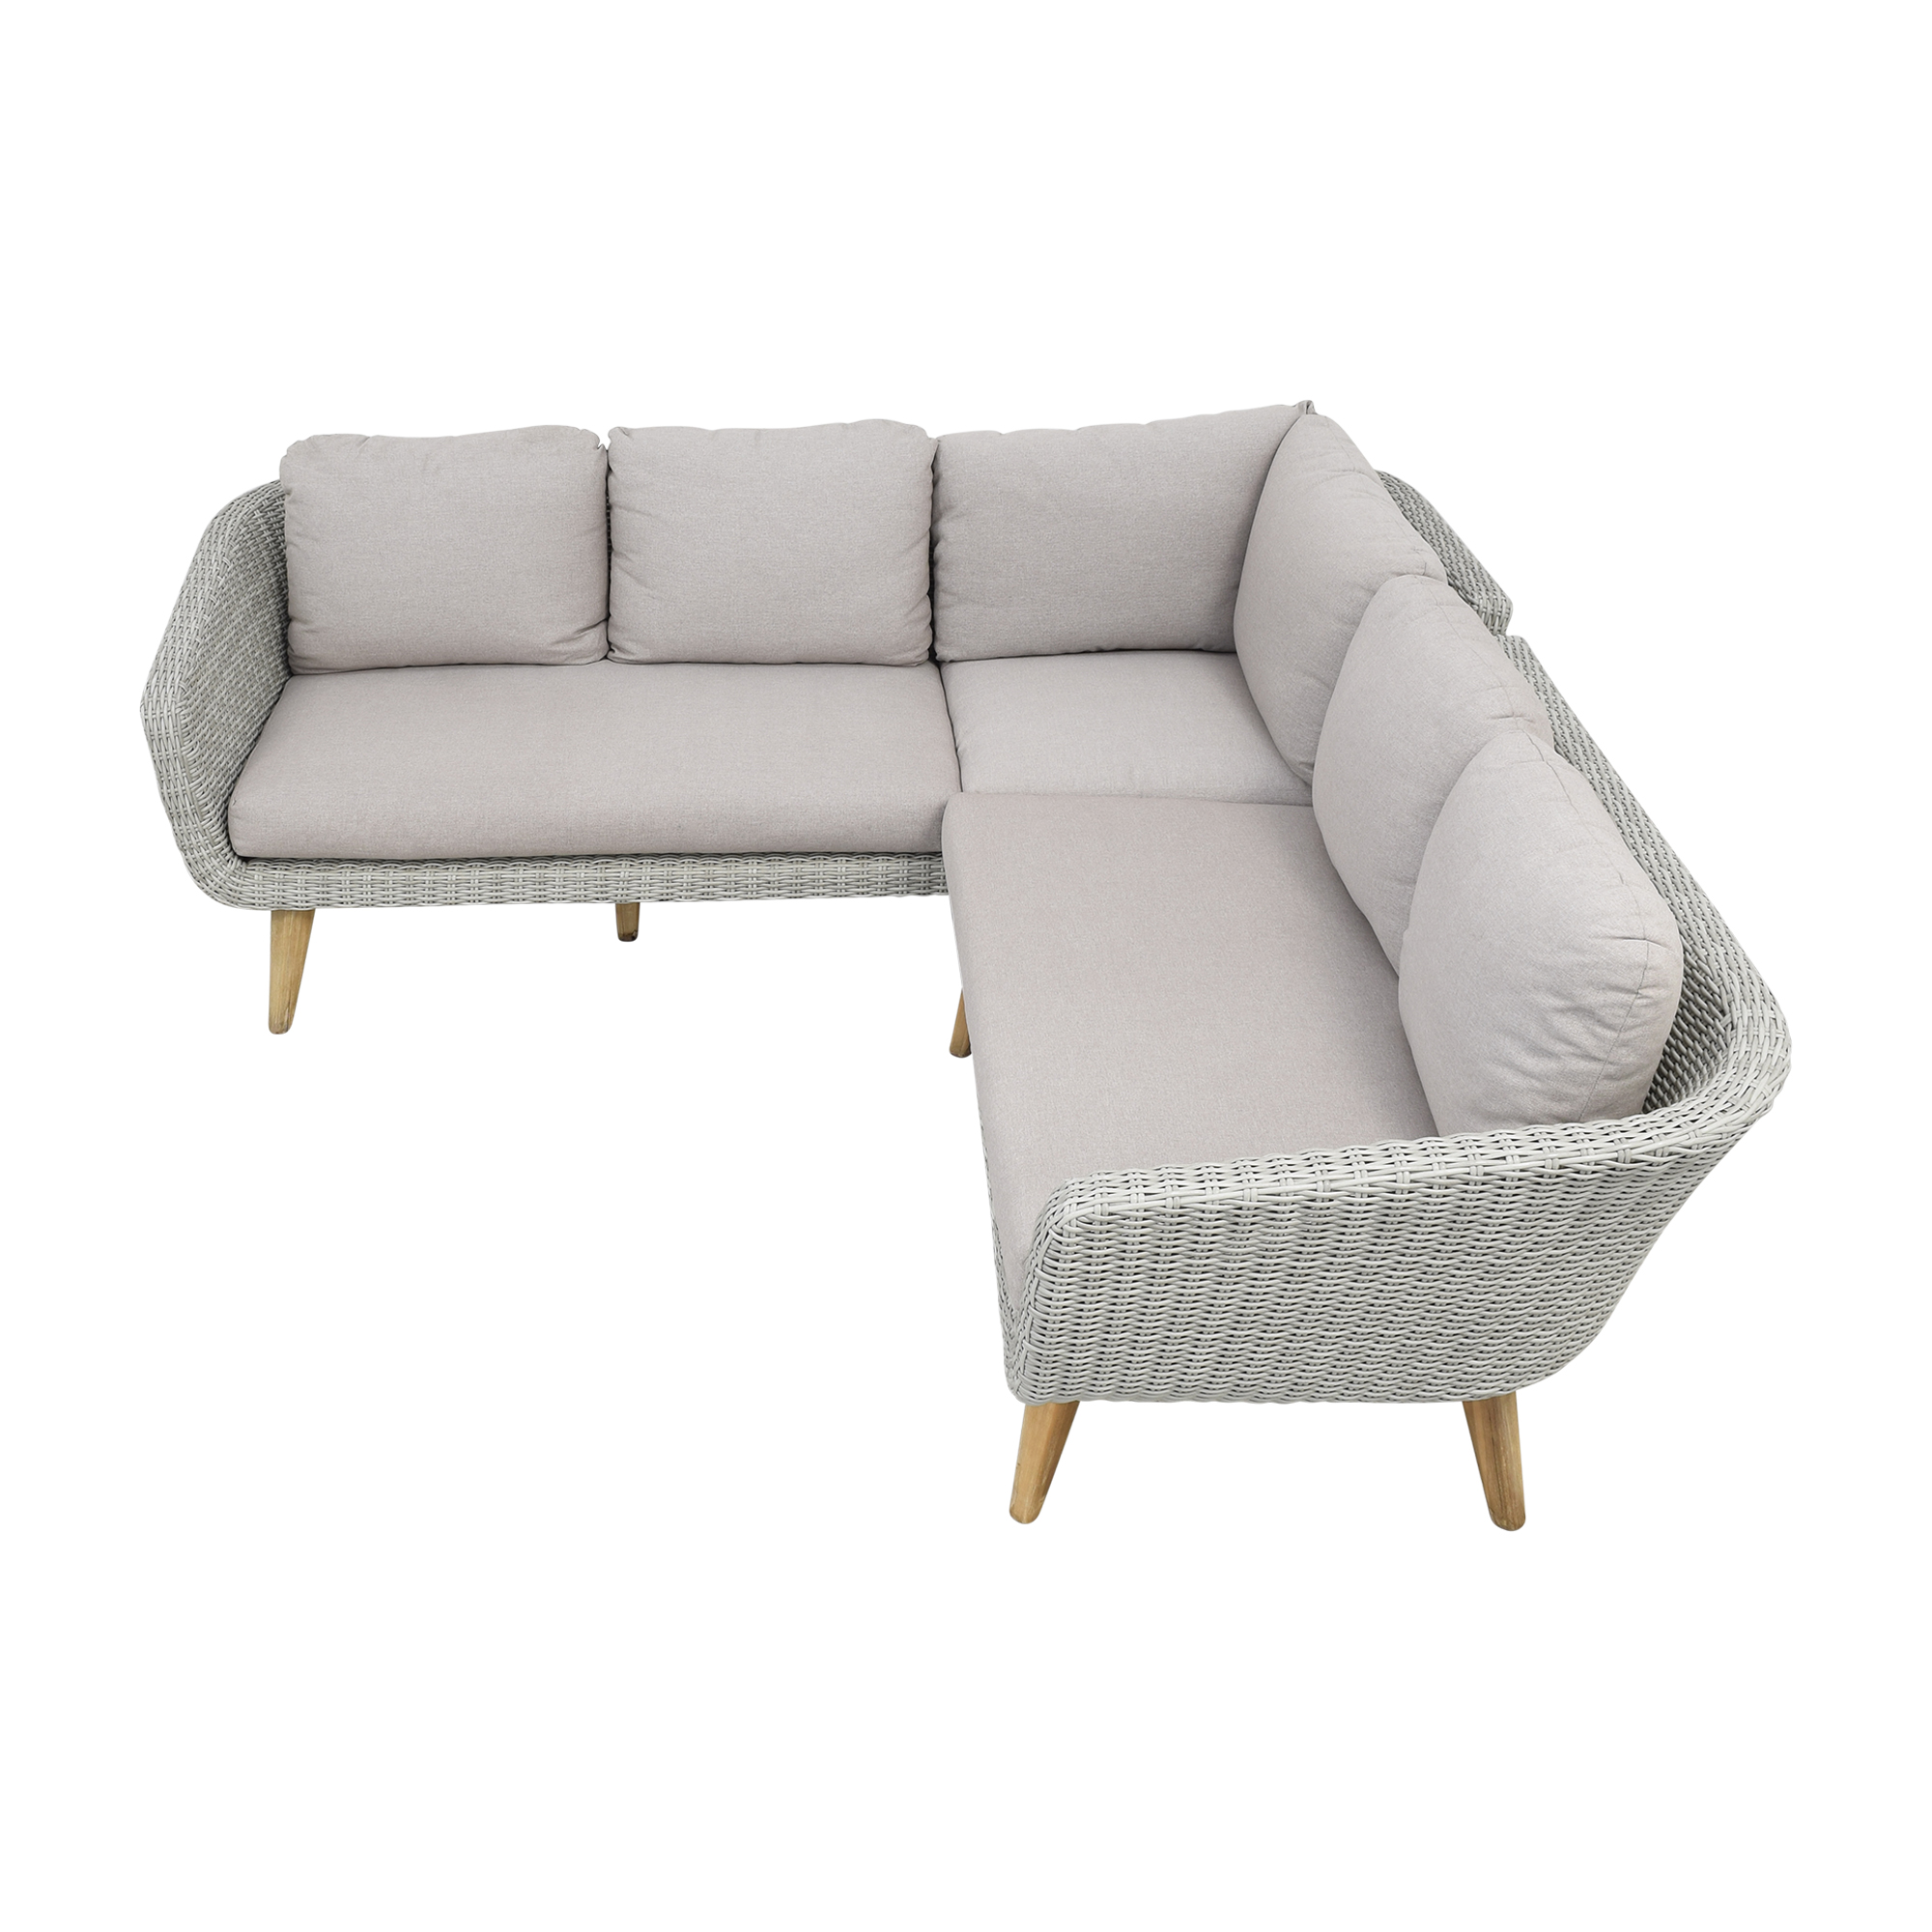 buy Article Article Ora Beach Sand Sectional online